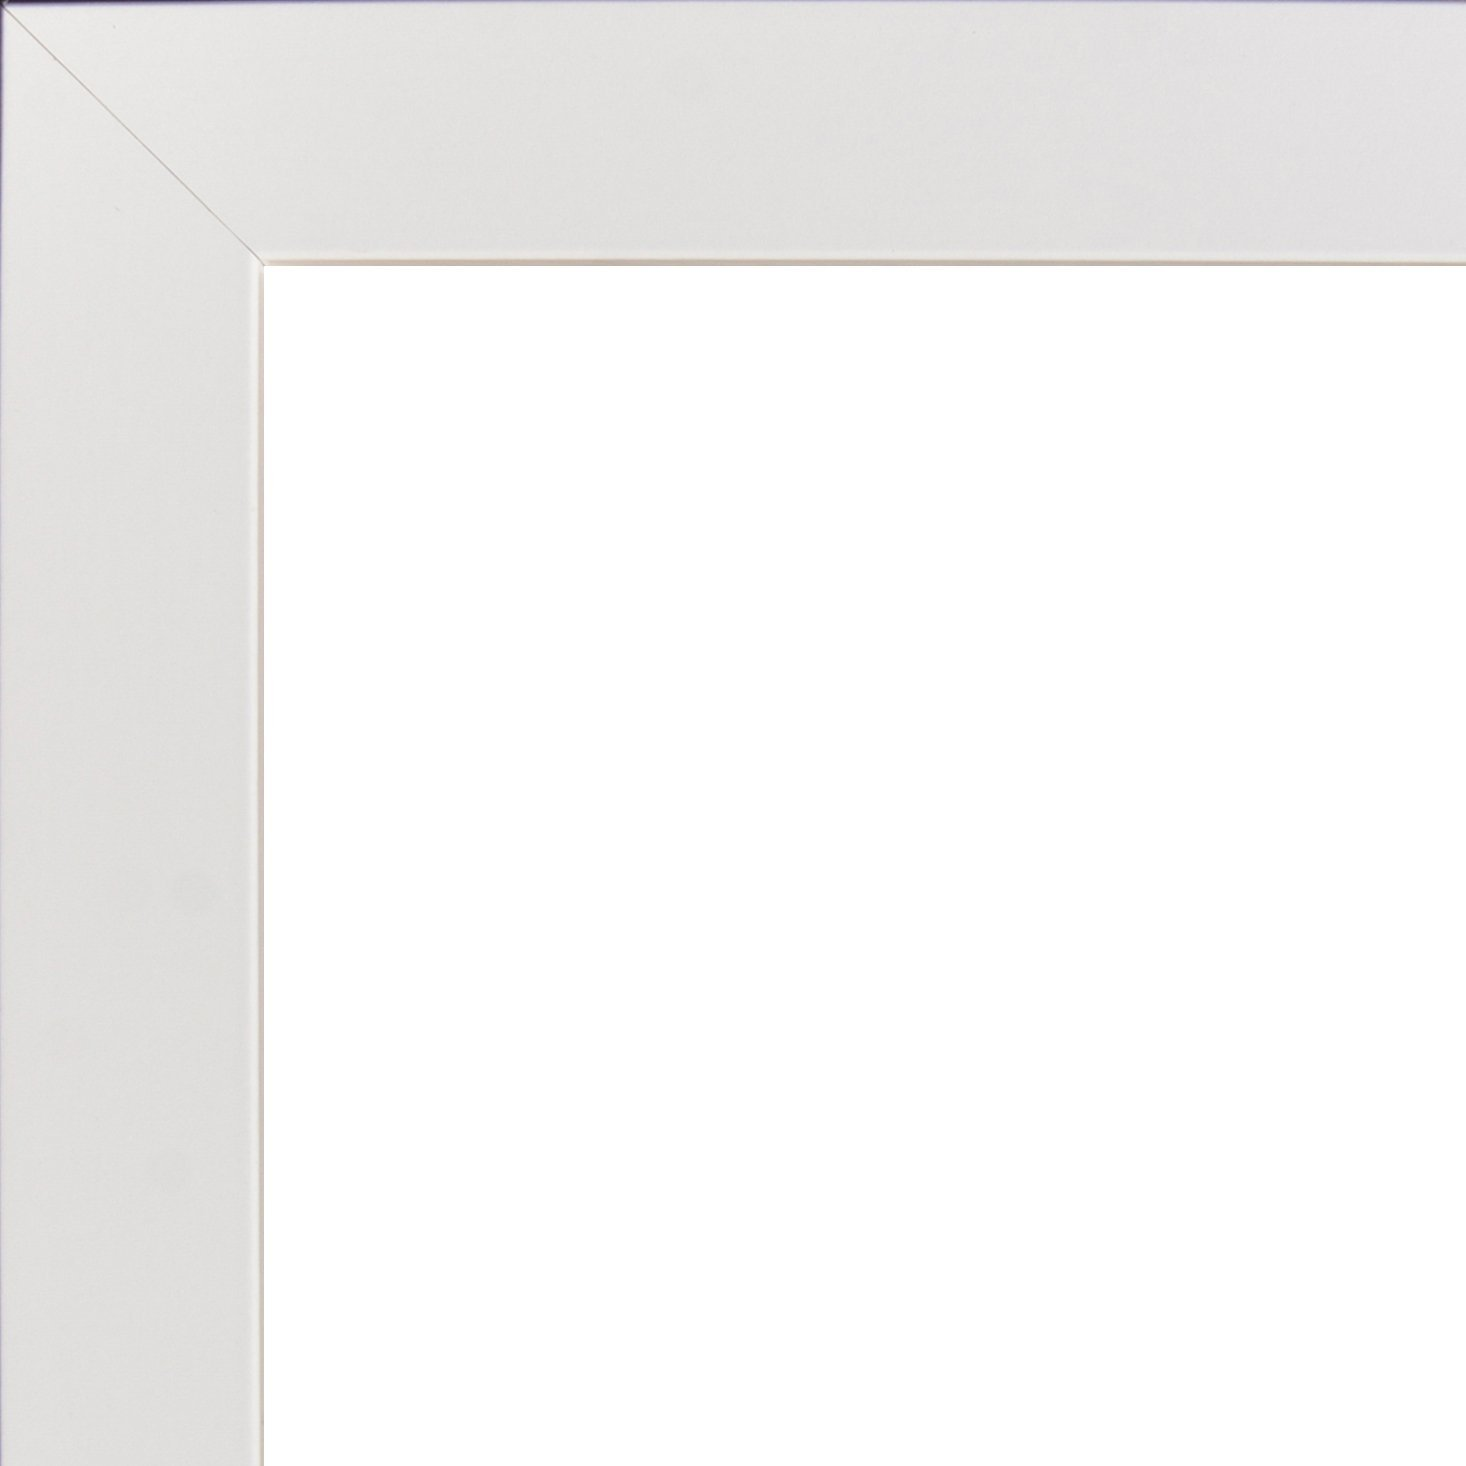 Cheap frame 19 x 25 find frame 19 x 25 deals on line at alibaba arttoframes 13x19 13 x 19 picture frame white 125 wide jeuxipadfo Image collections